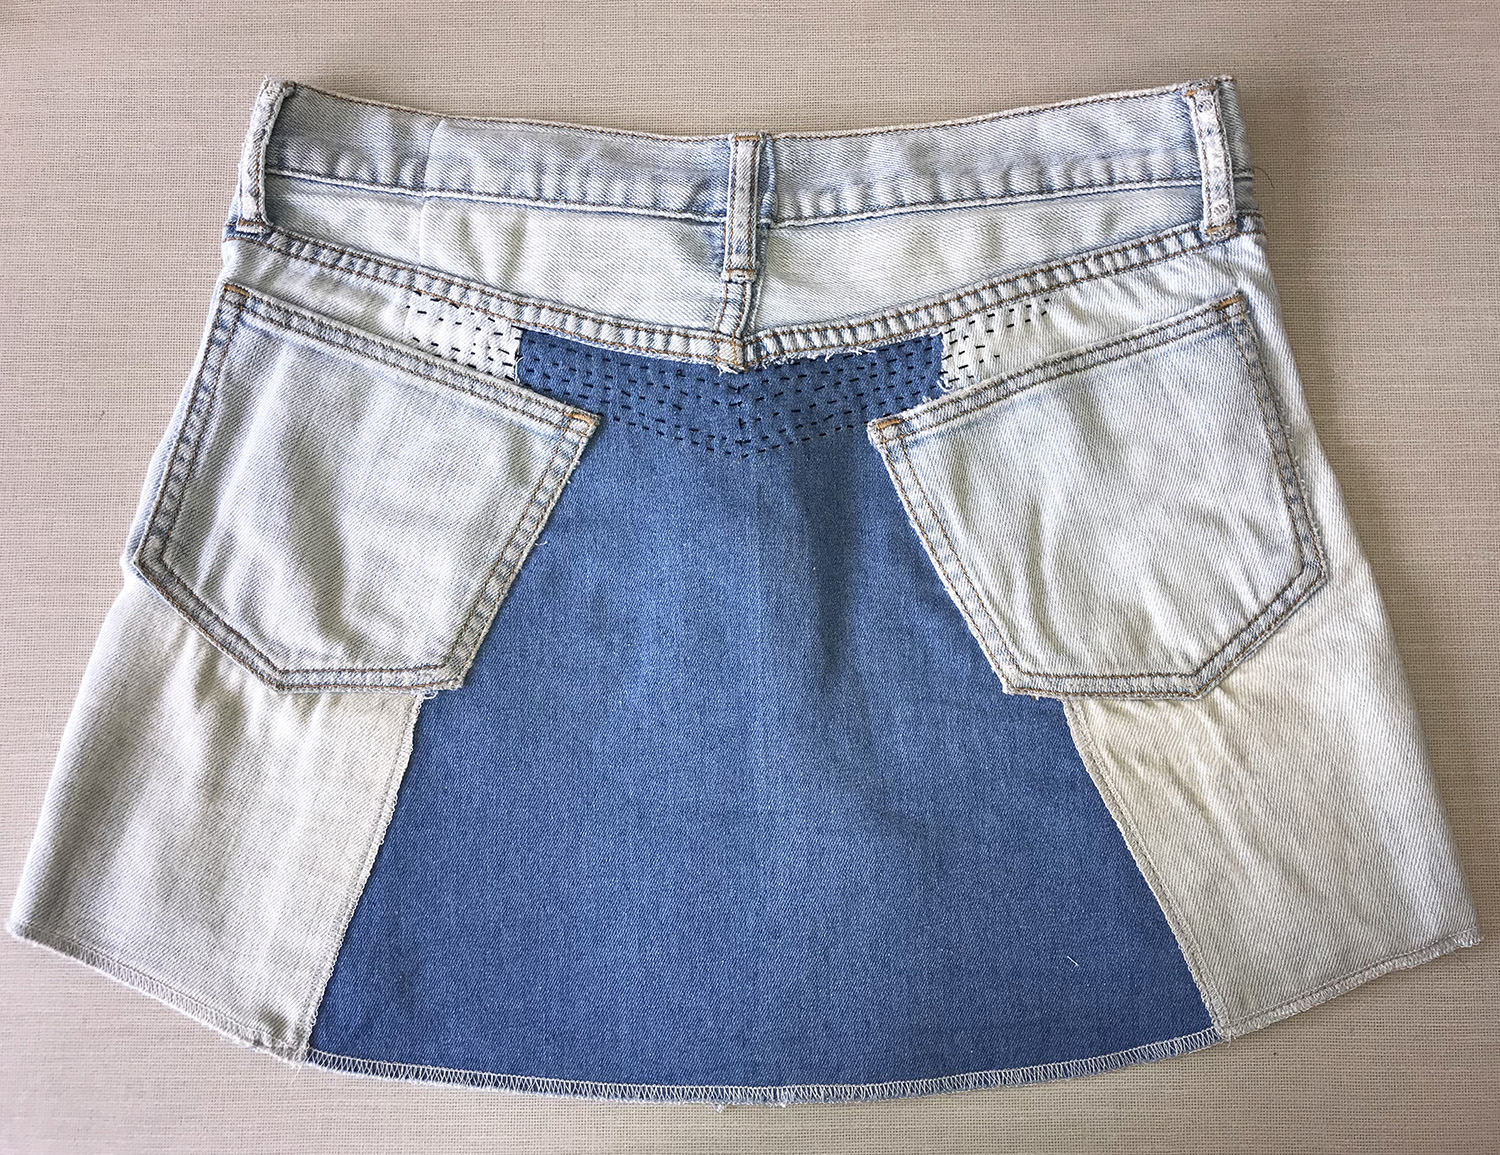 FashionTechsupport-Jean-shorts-after-back.jpg